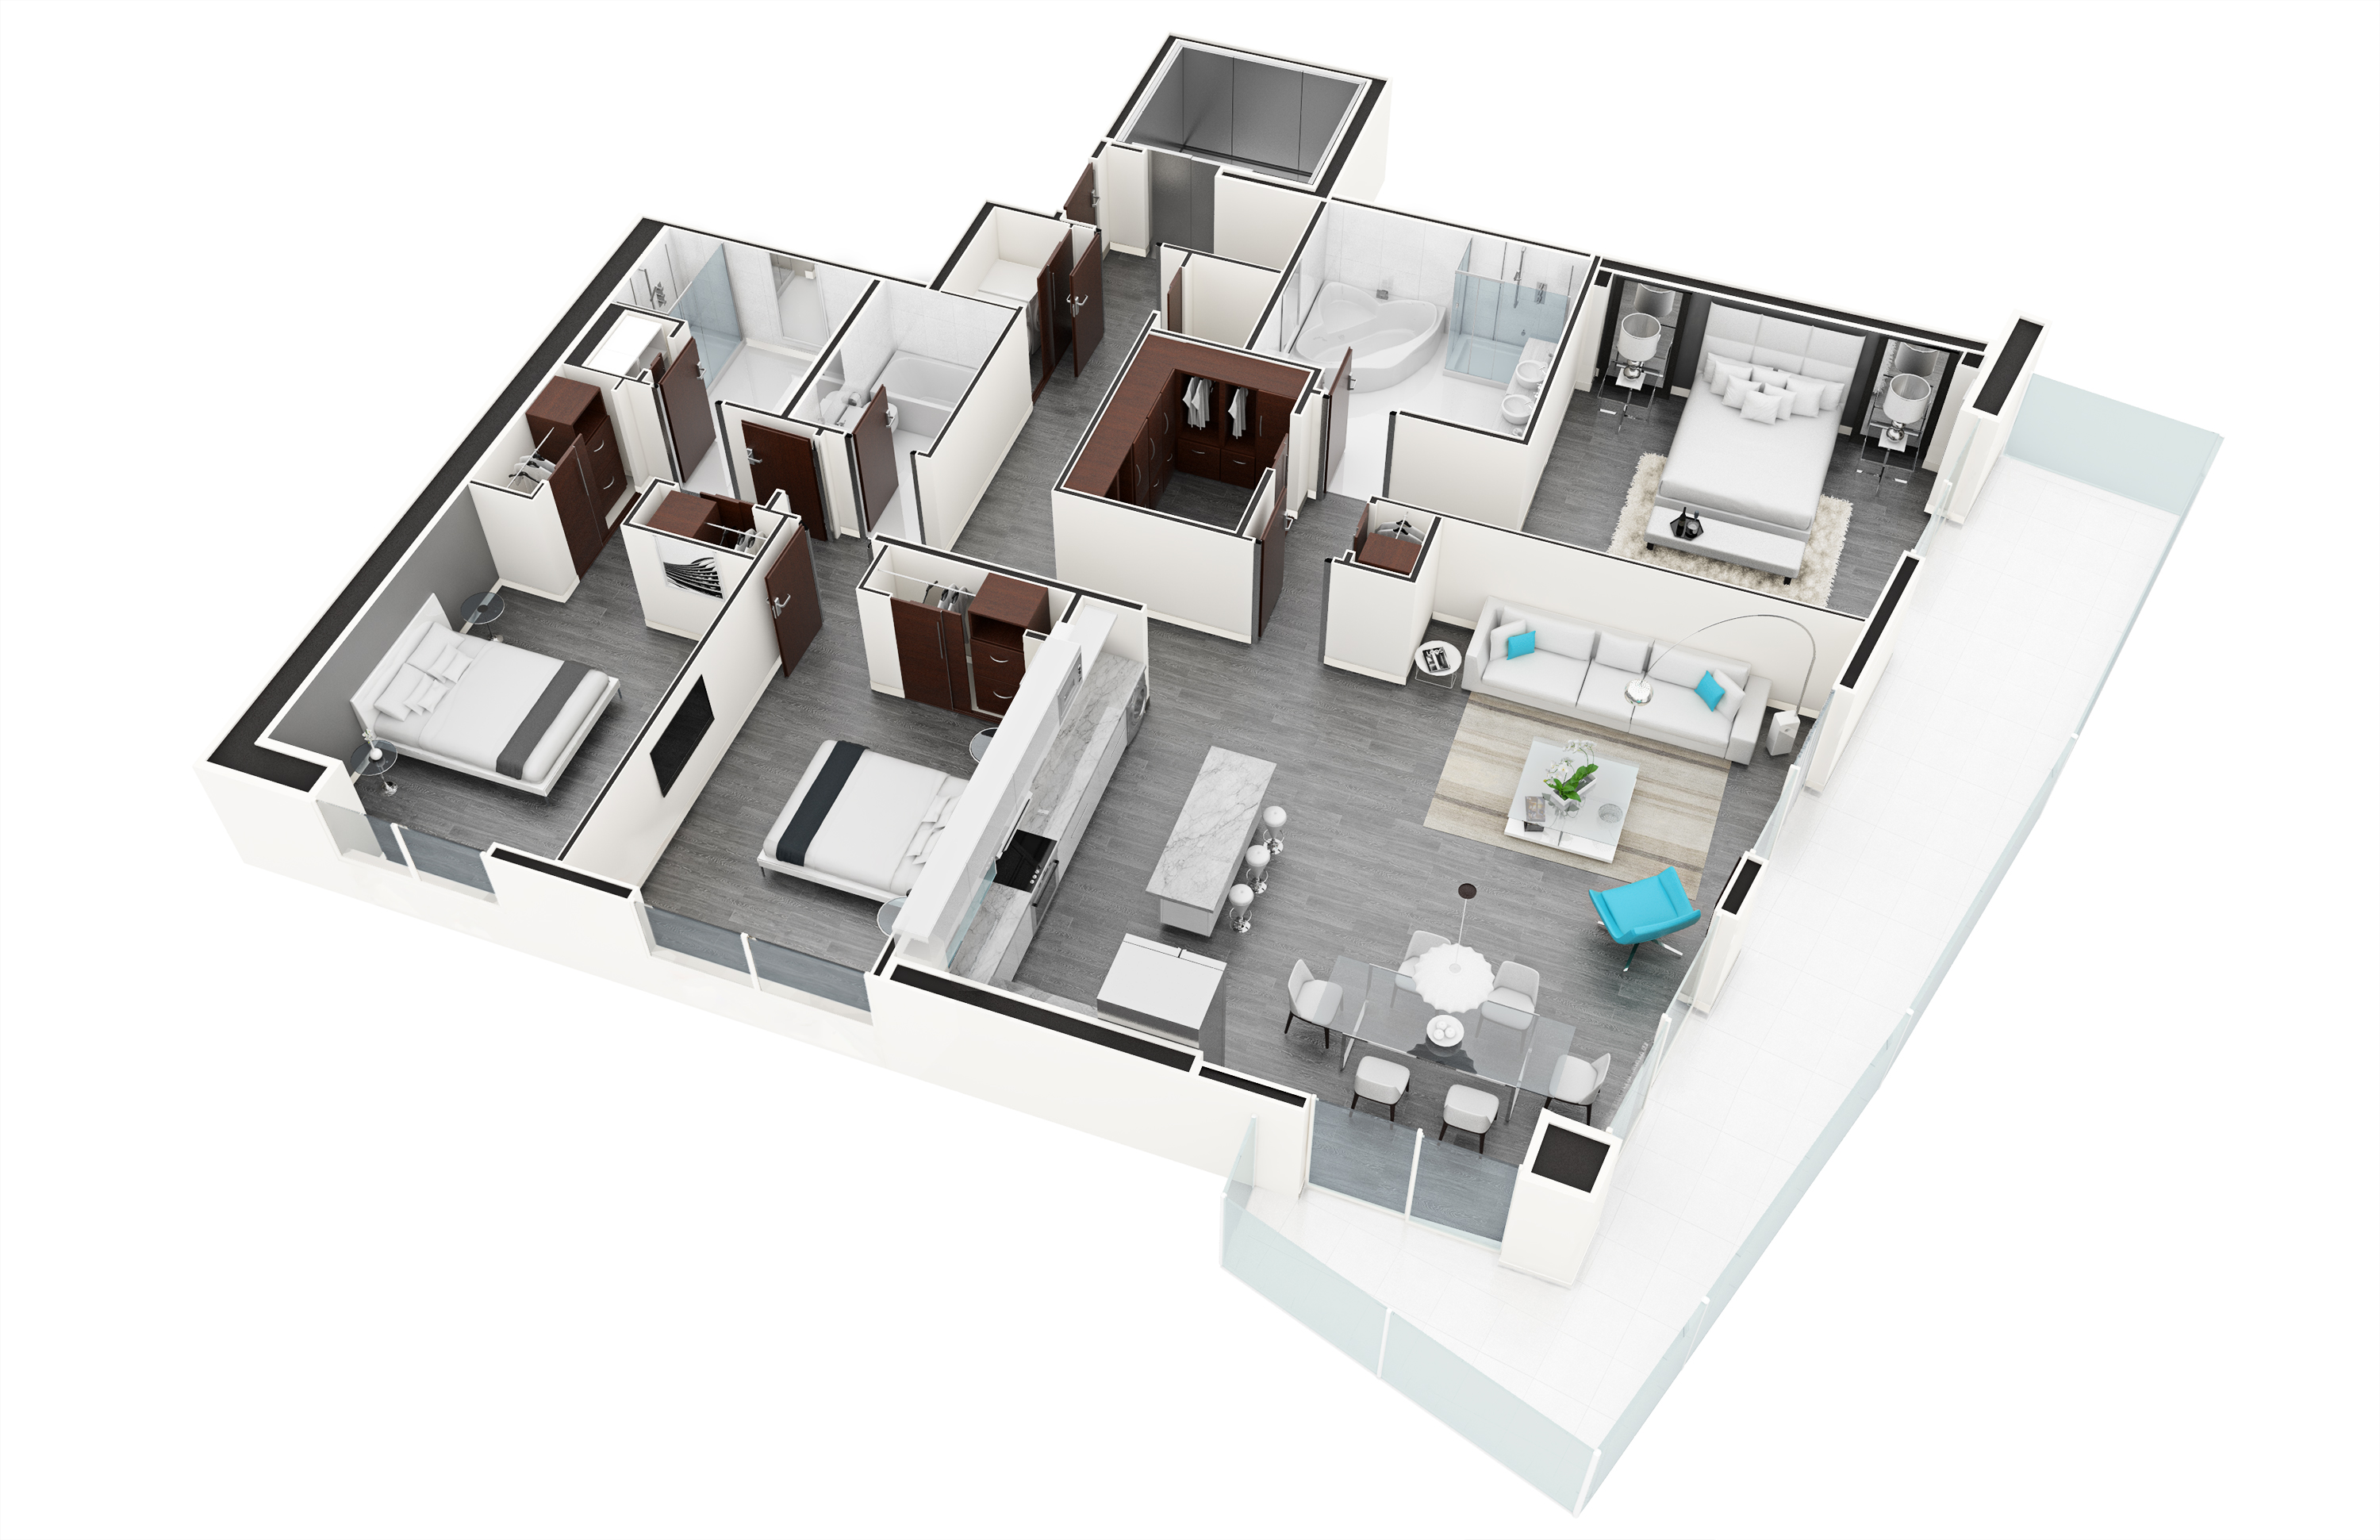 3D Renderings Miami Artefacto